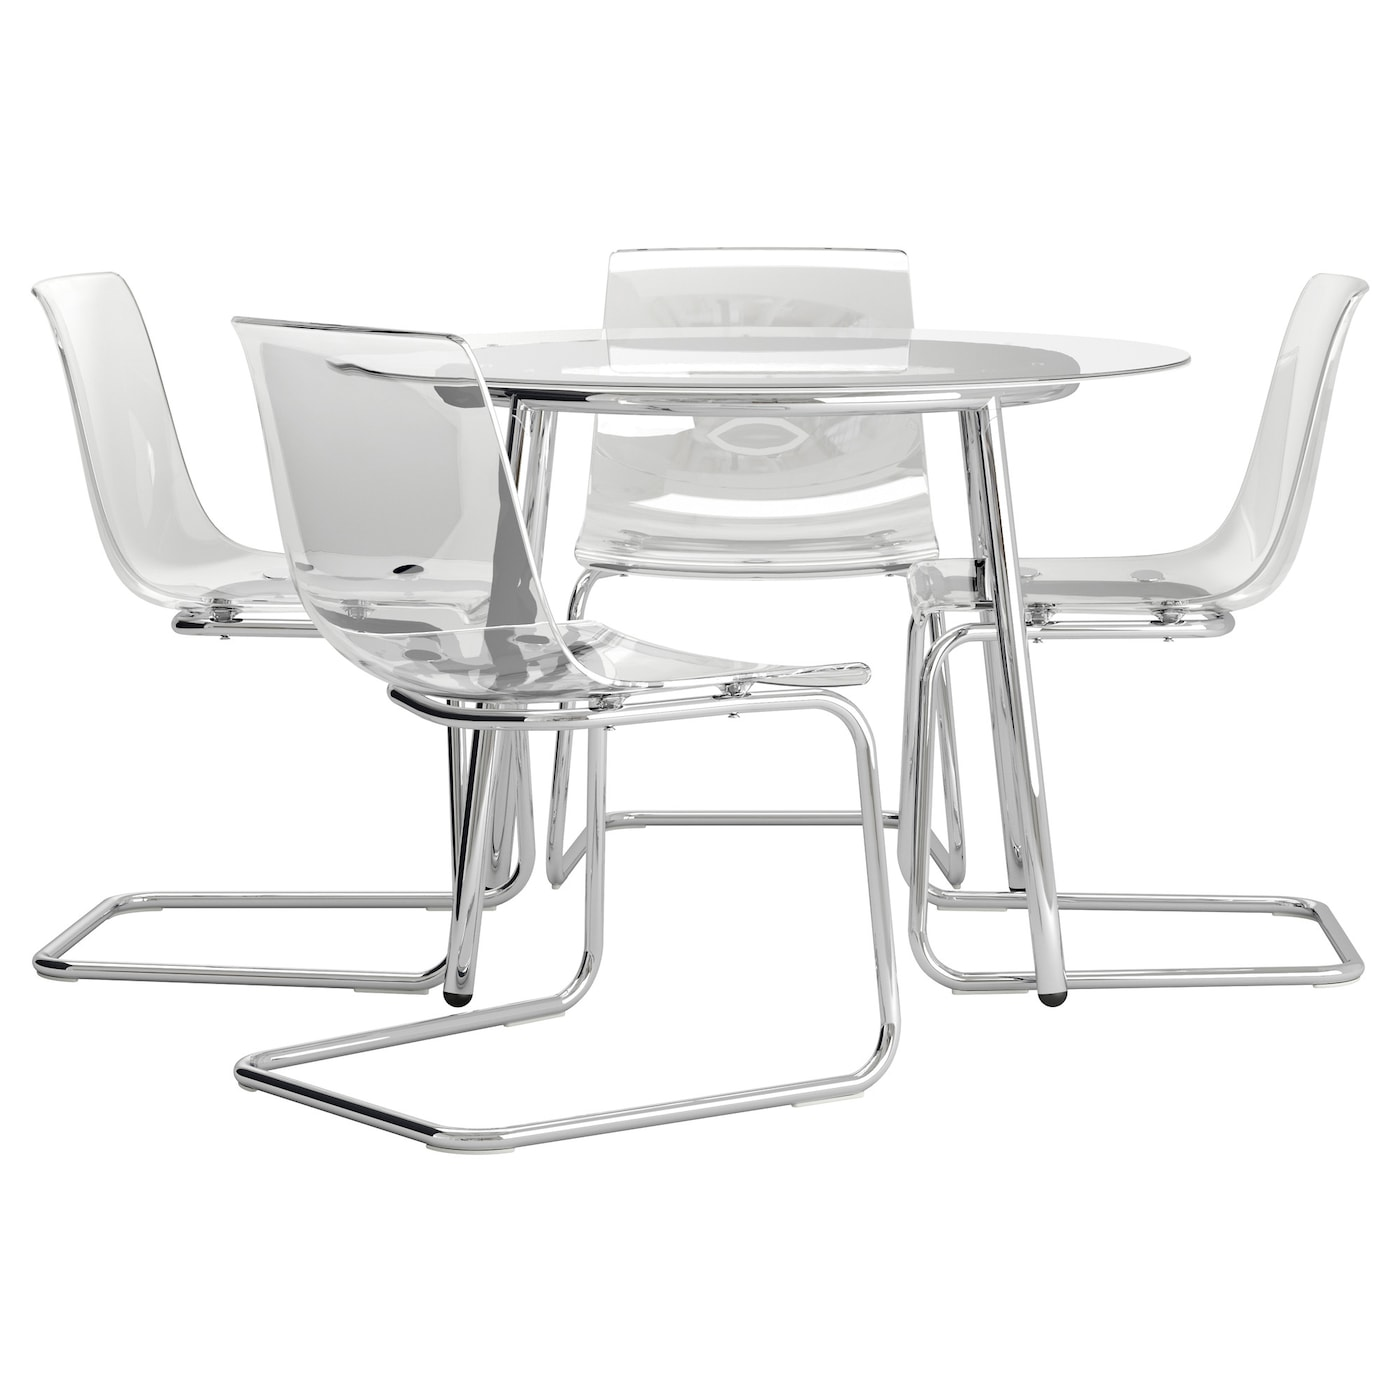 SALMI TOBIAS Table and 4 chairs Glass transparent 105 cm IKEA